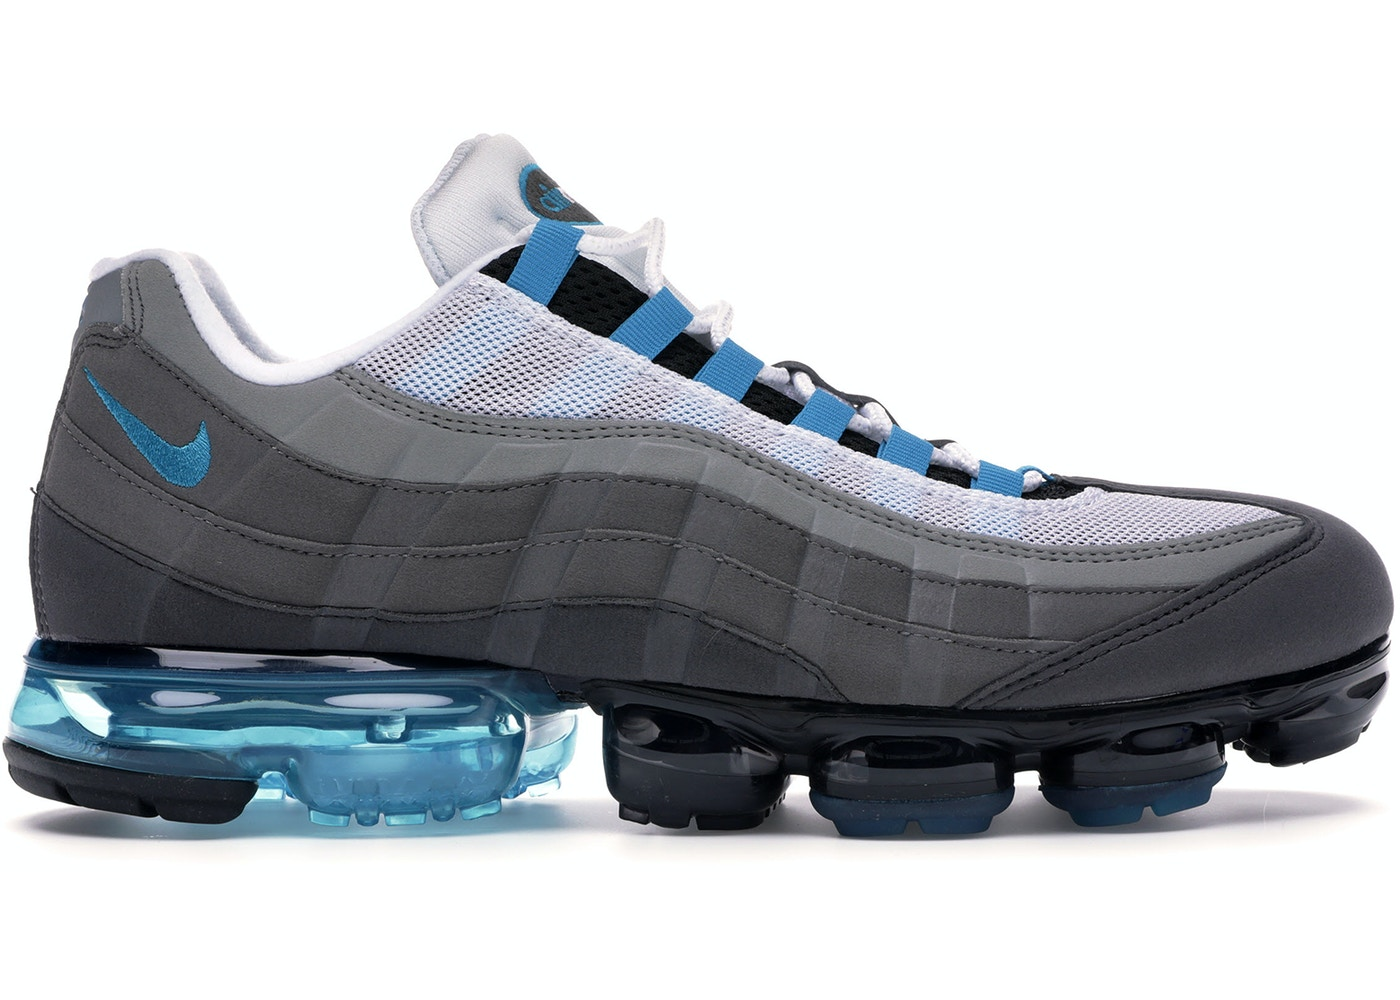 timeless design 57851 59530 Air VaporMax 95 Neo Turquoise